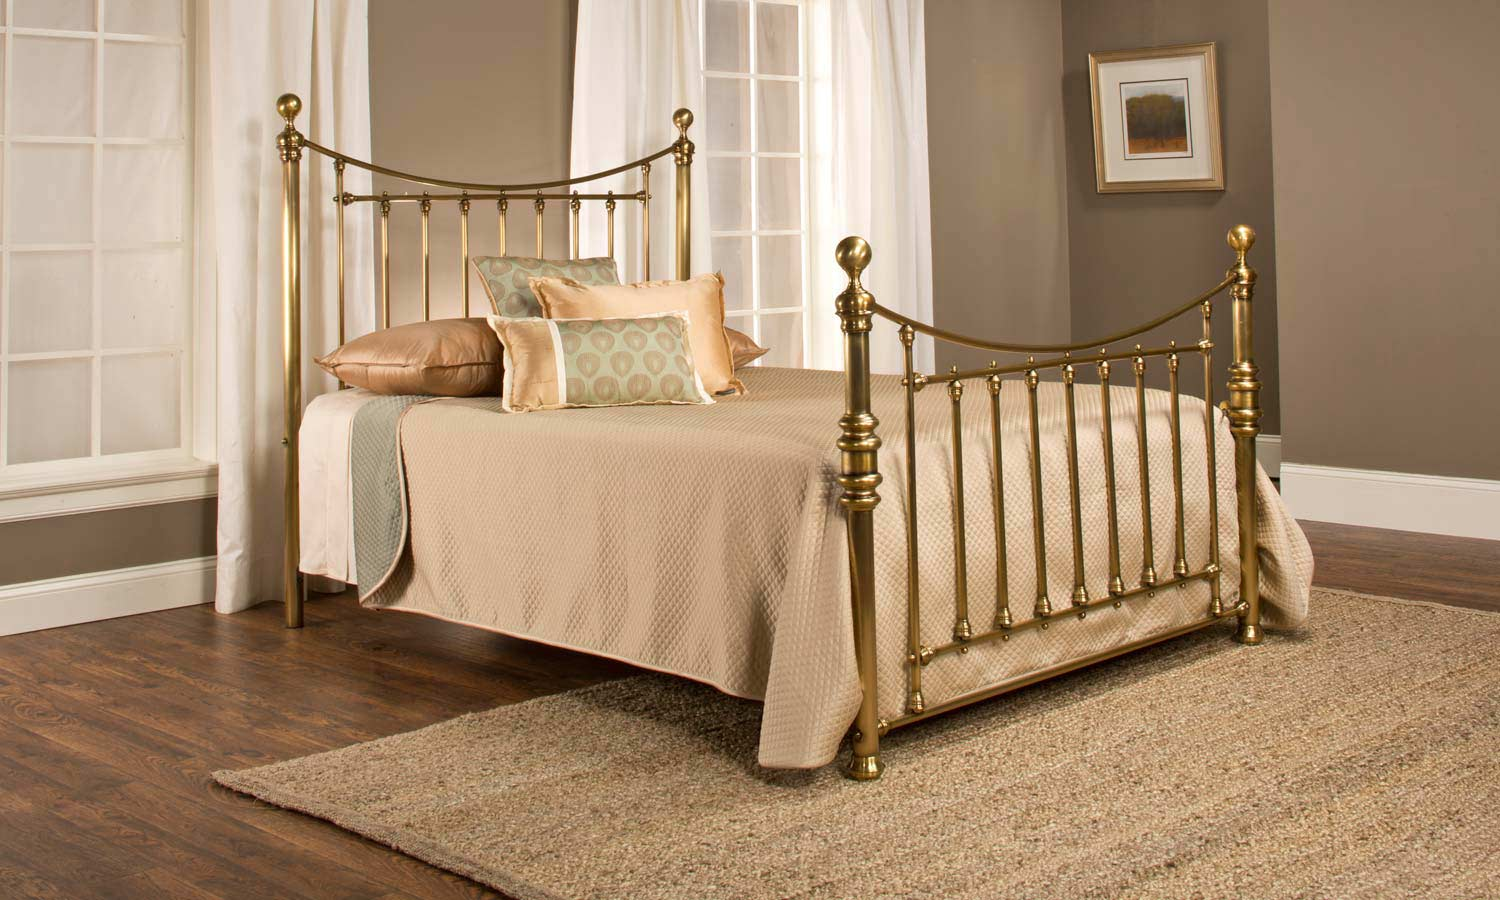 Hillsdale Old England Bed - Antique Brass